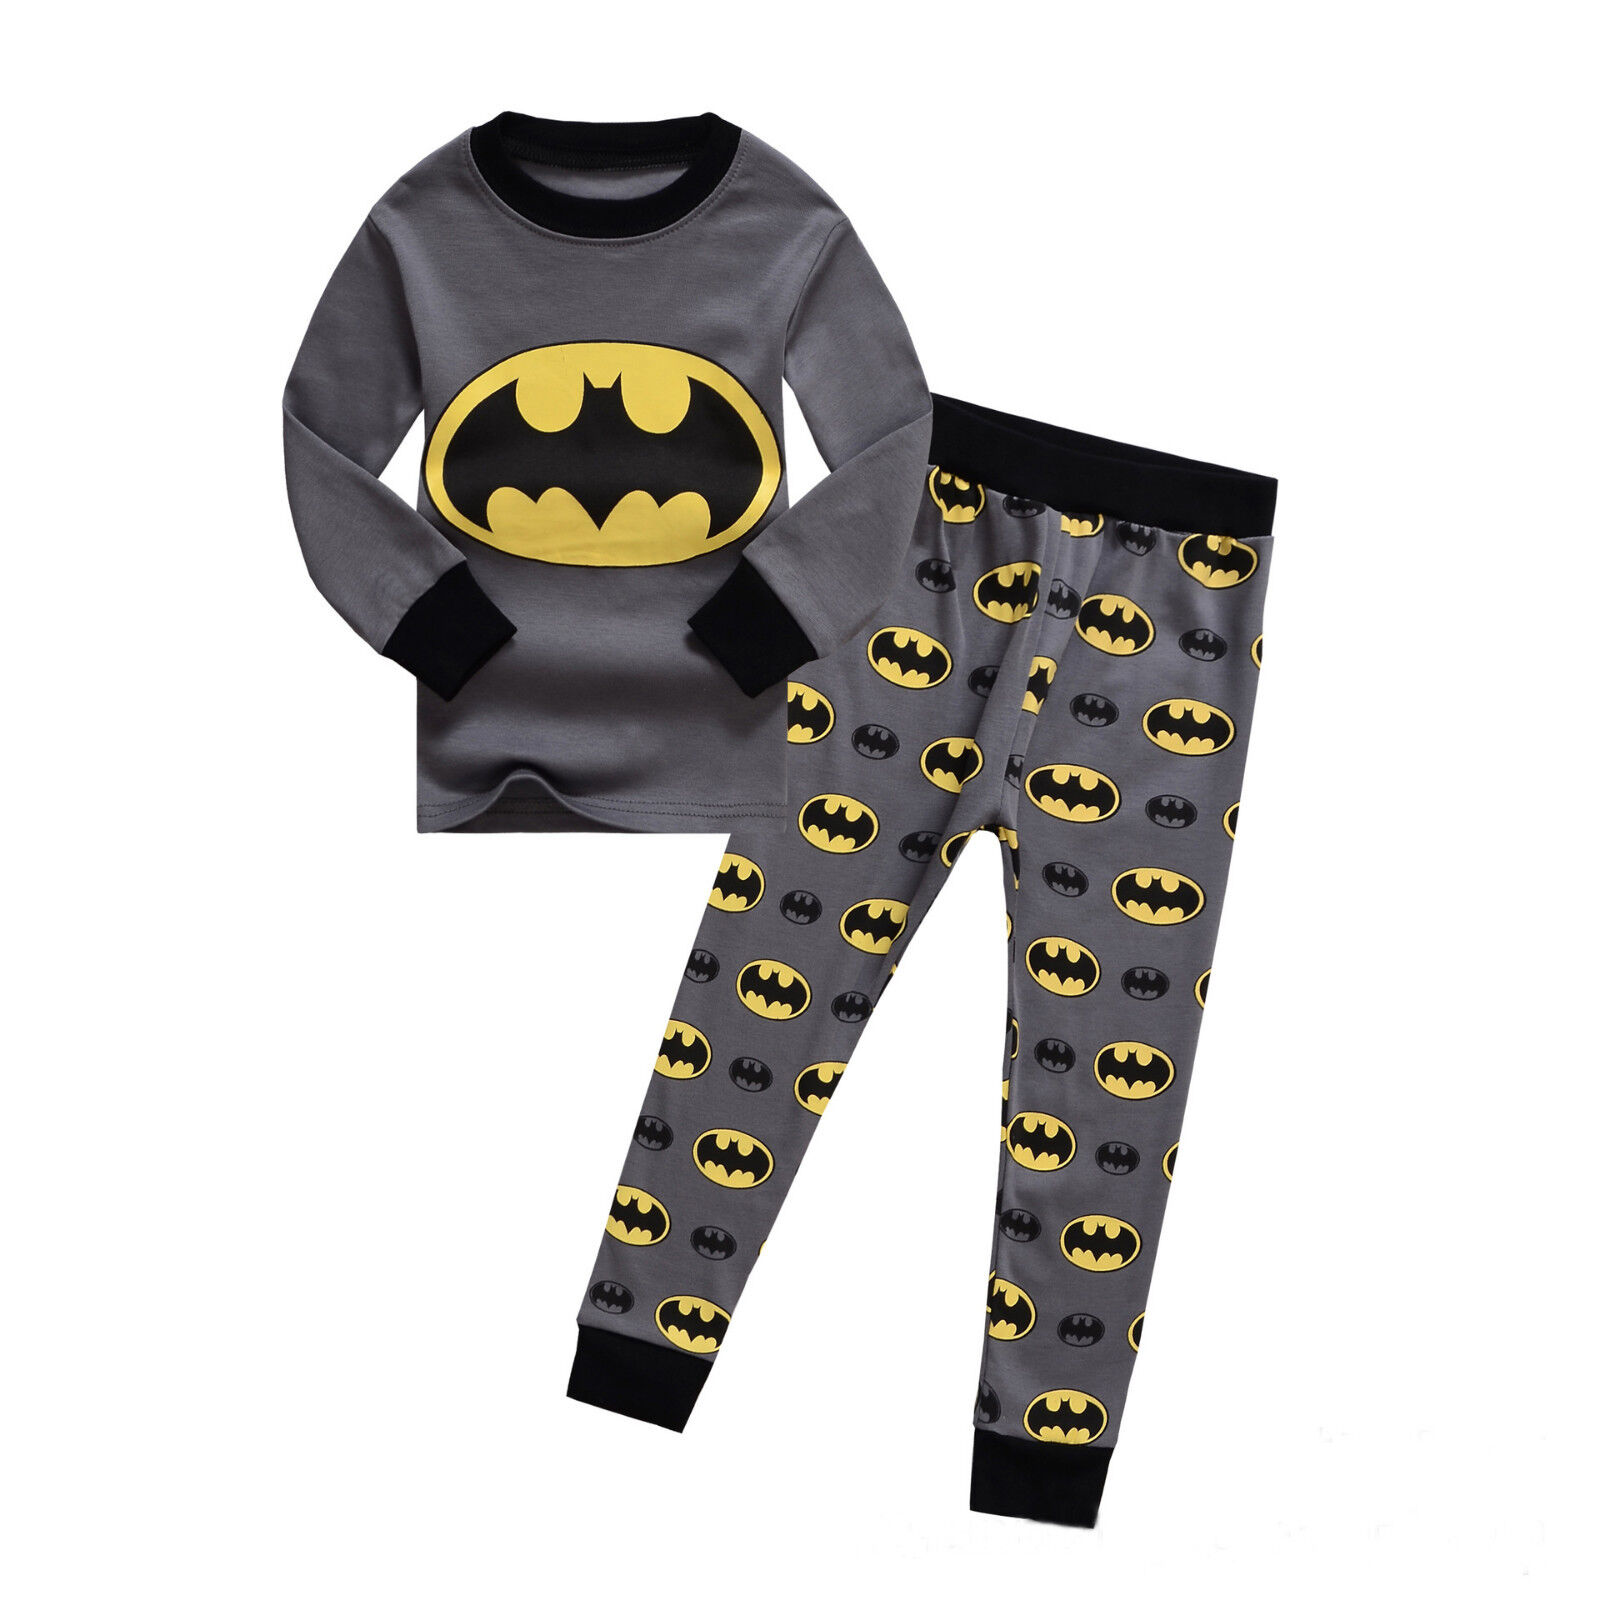 Brand Kids Toddler Baby Boys Batman Spider-man Sleepwear Pj's Pajamas Sets Mon